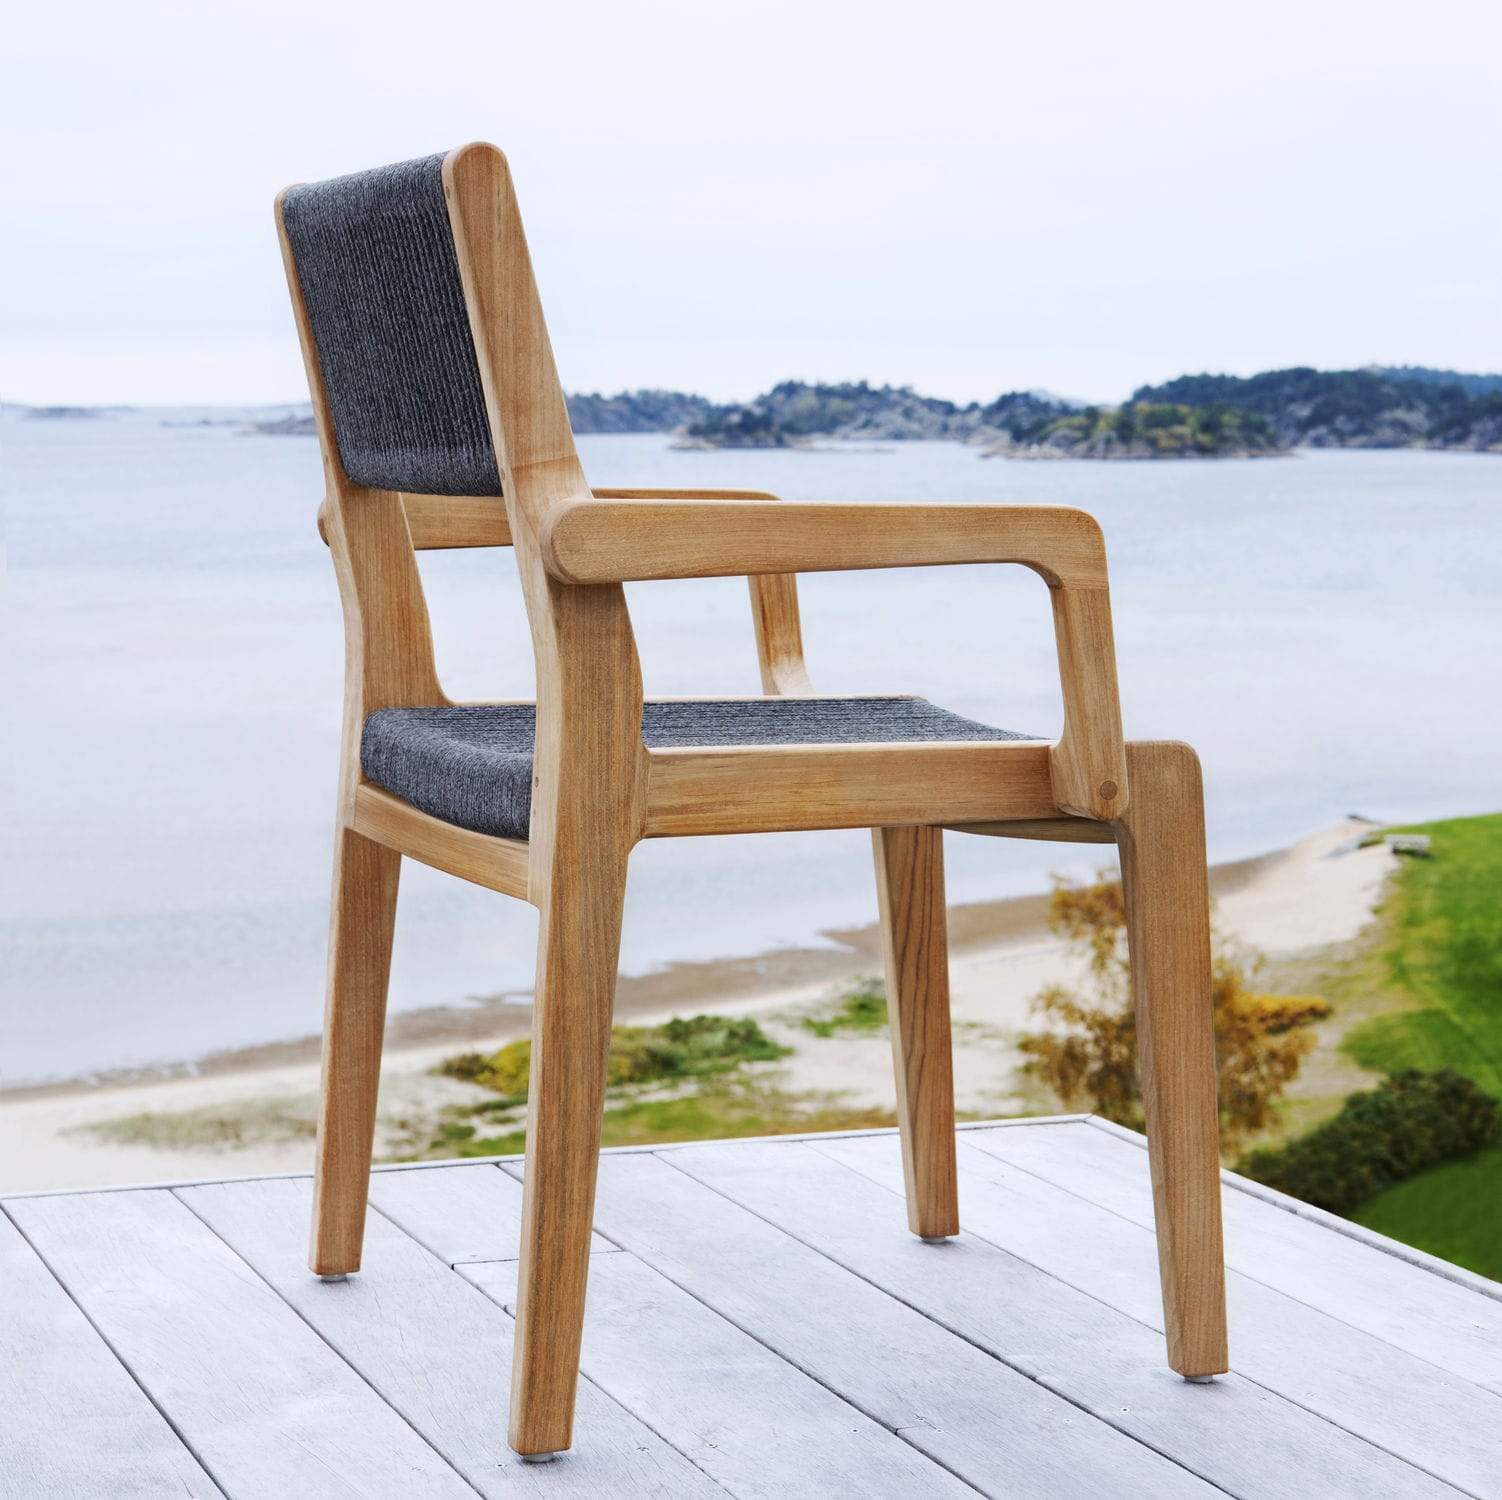 Stupendous Contemporary Dining Chair With Armrests Teak Outdoor Gmtry Best Dining Table And Chair Ideas Images Gmtryco